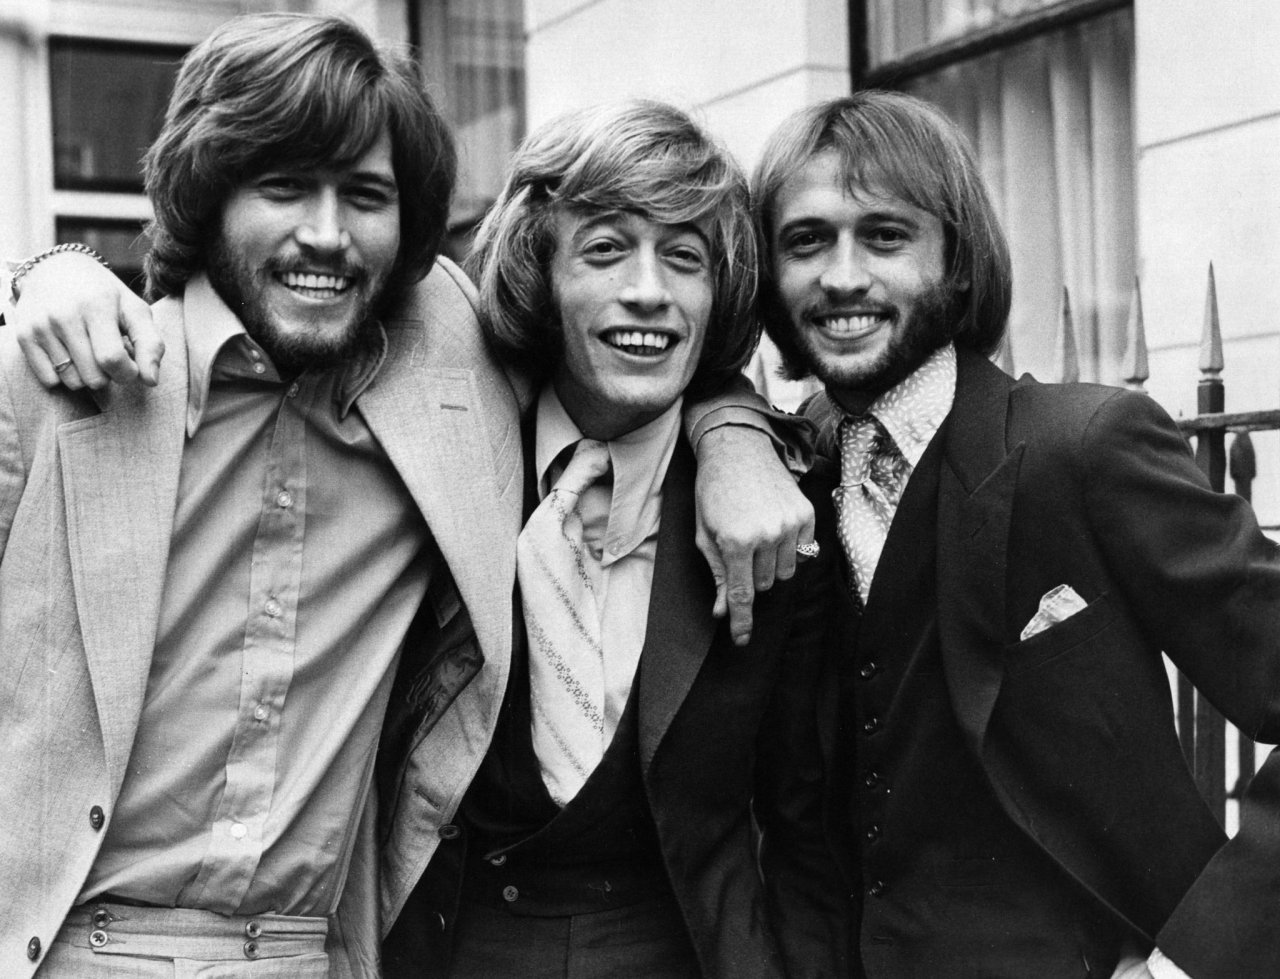 Brothers Gibb: A Bee Gees Top Ten!